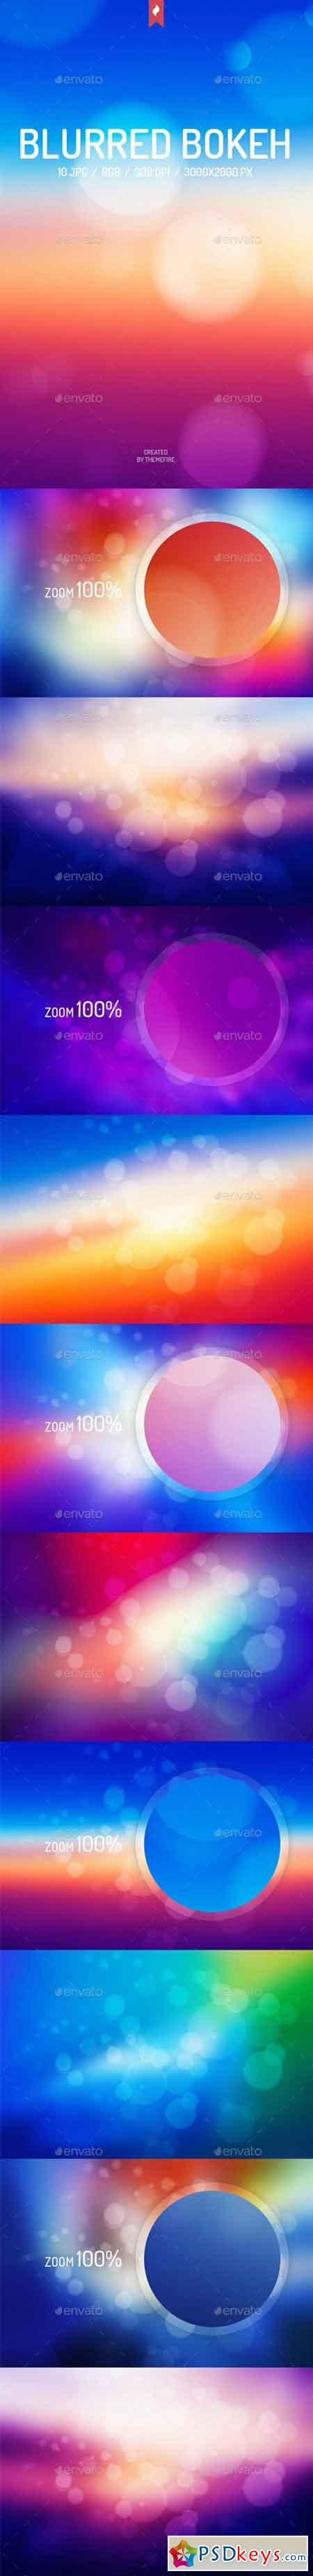 Colorful Blurred Bokeh Backgrounds 13523569